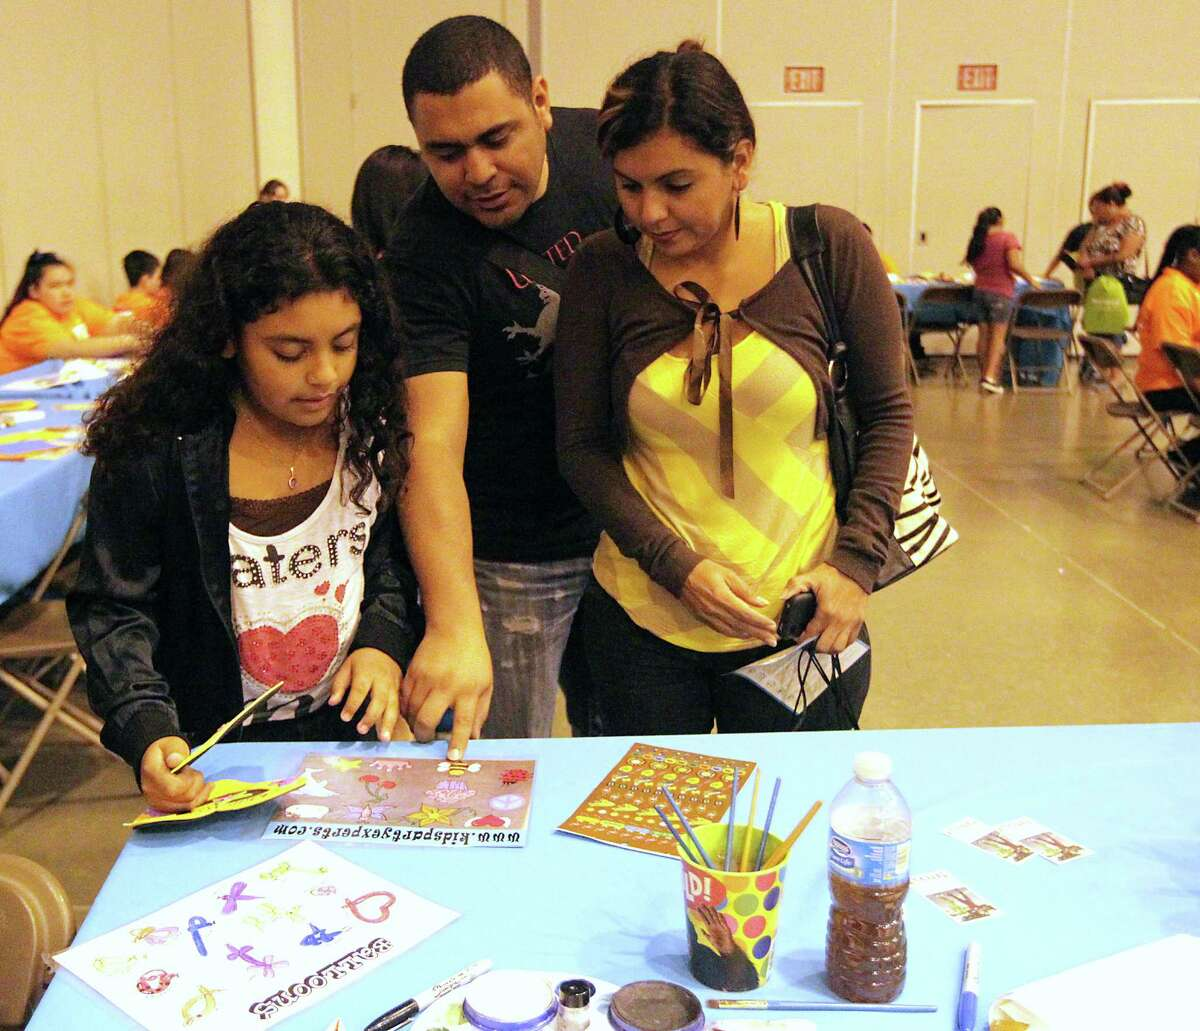 Juliette Cruz, left, and her father Manolo Cruz, center, and mother Jenny Bello, right, at the Be Covered Houston Care Fair.